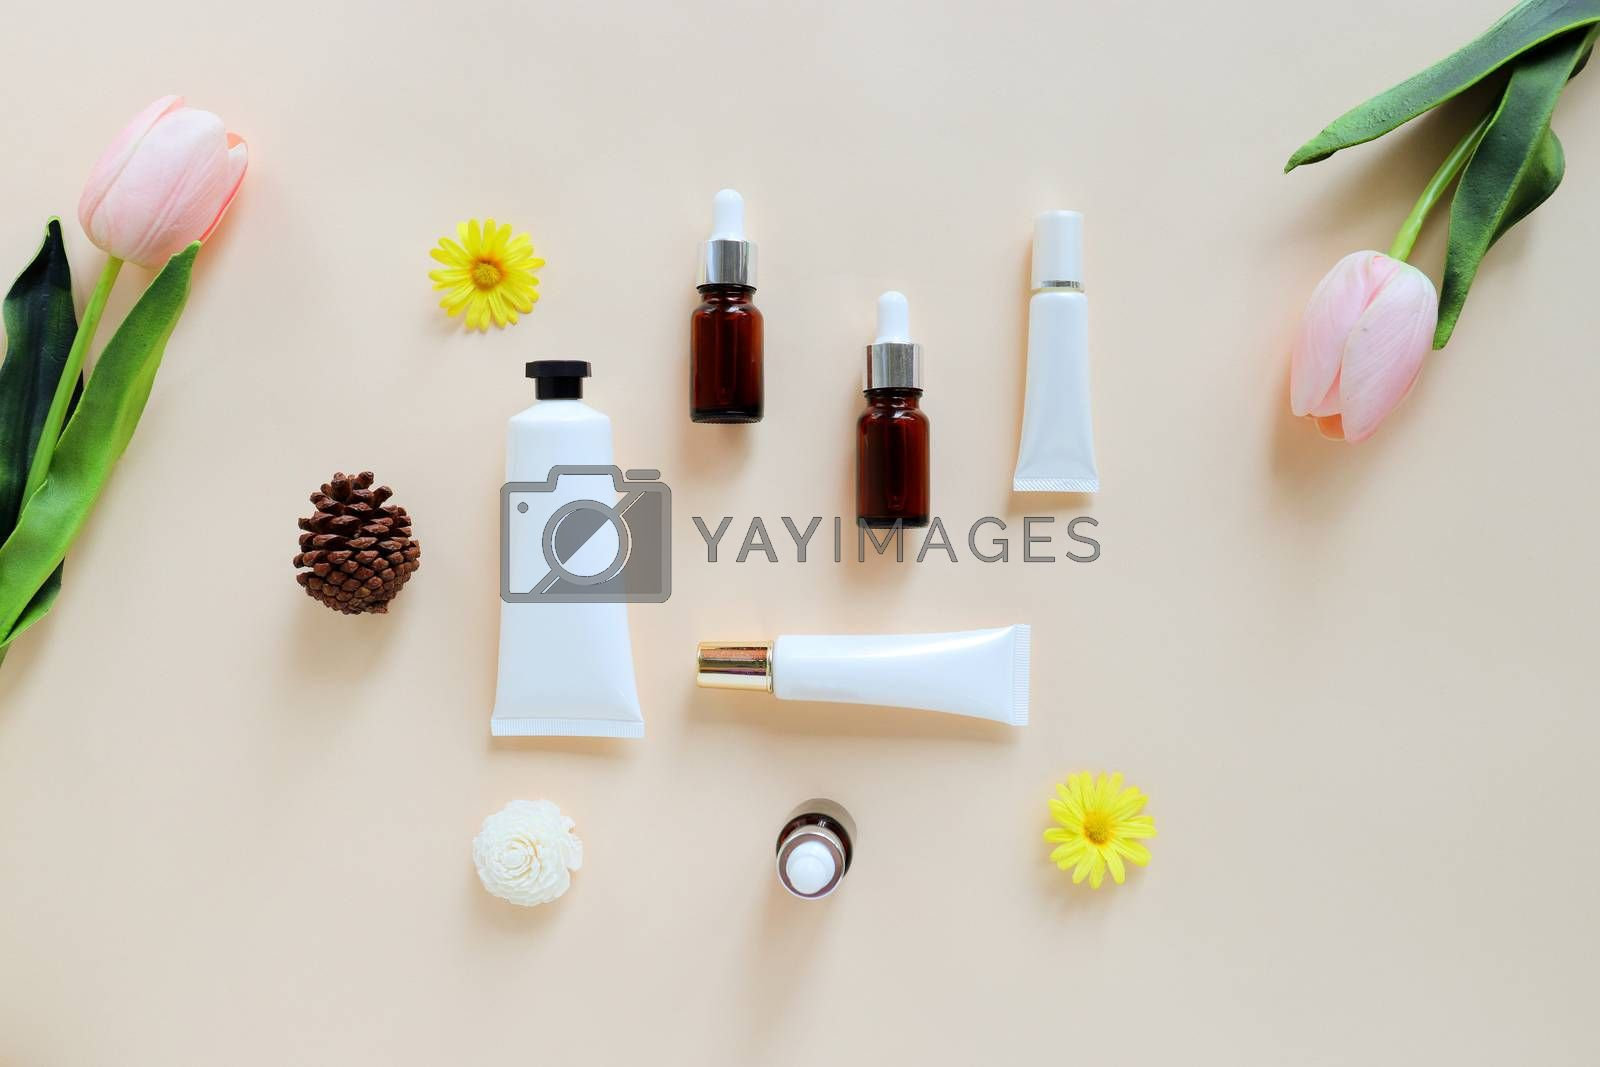 Royalty free image of Flat lay of various organic skincare and beauty products for moc by nuchylee